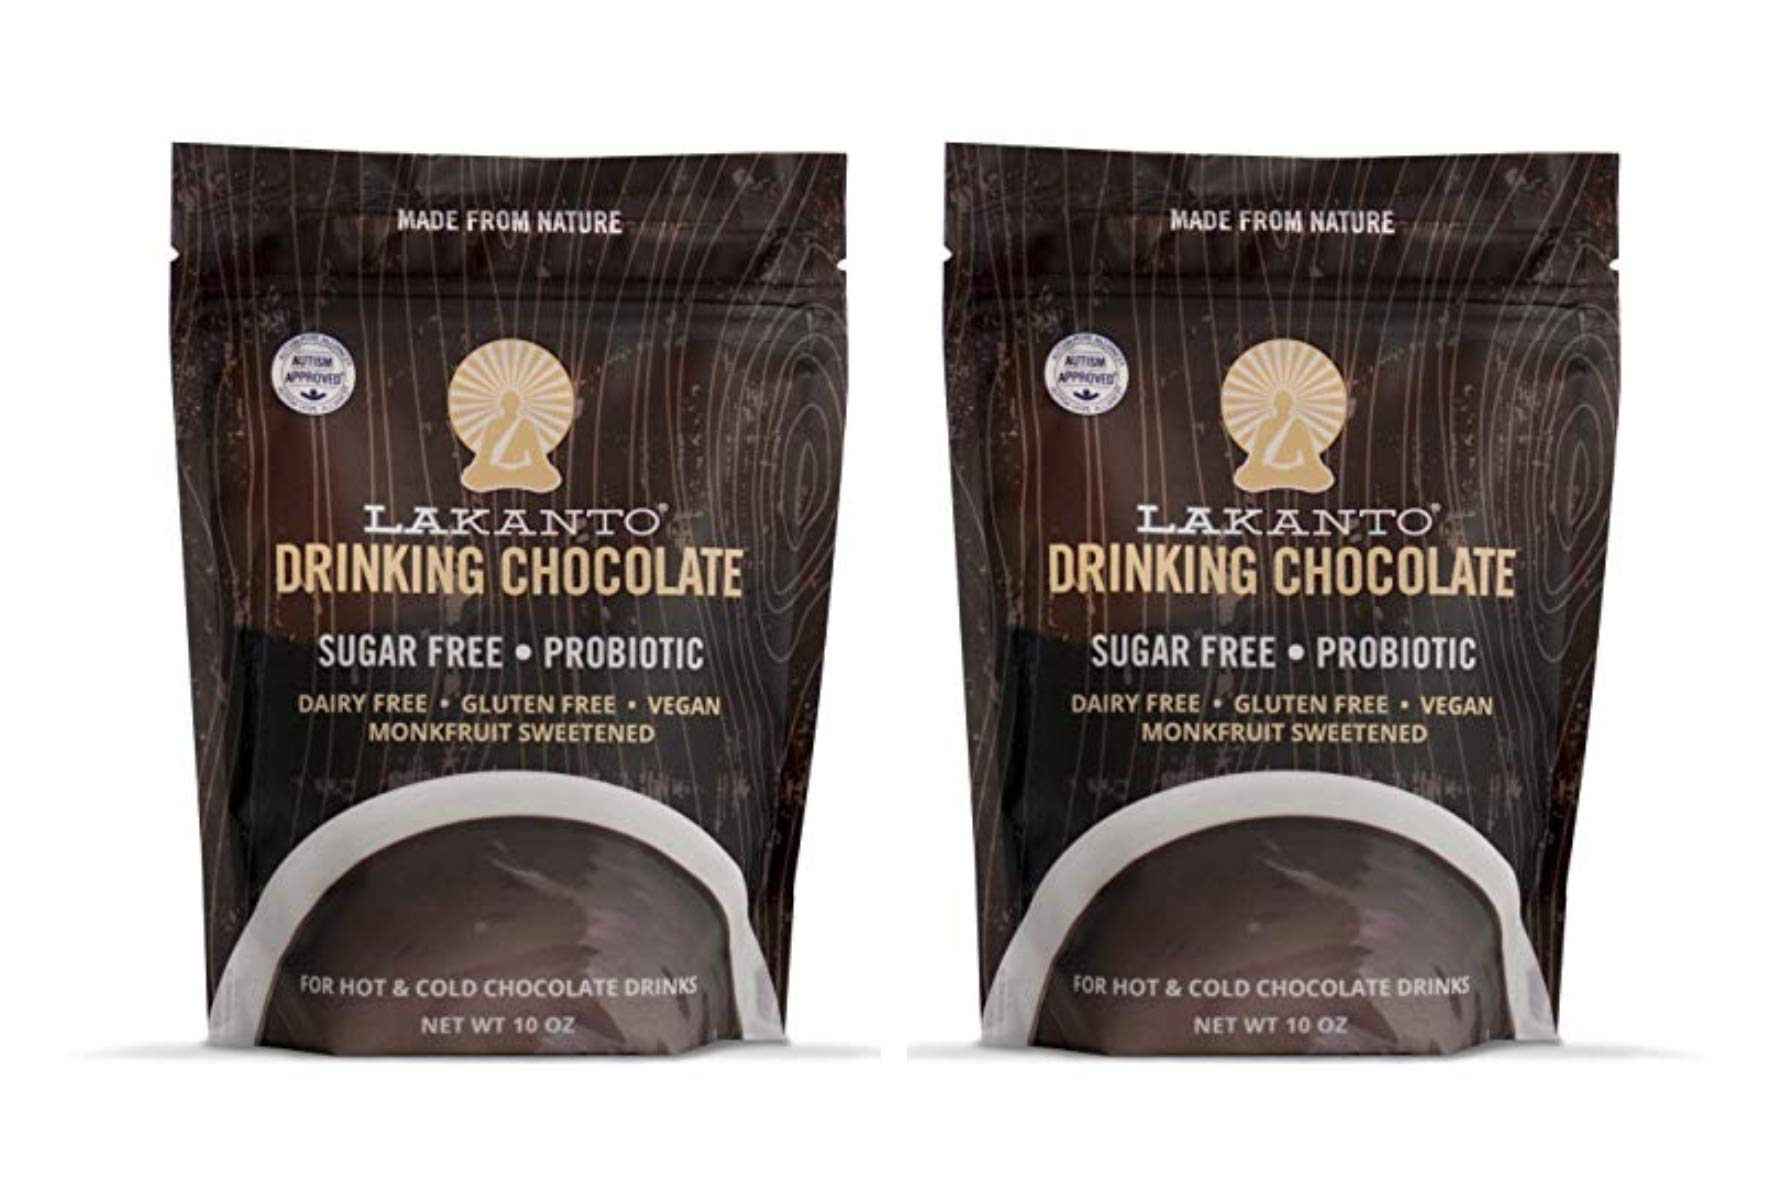 Lakanto Drinking Chocolate, 1 Net Carb, 10 Ounce (Pack of 2) by Lakanto